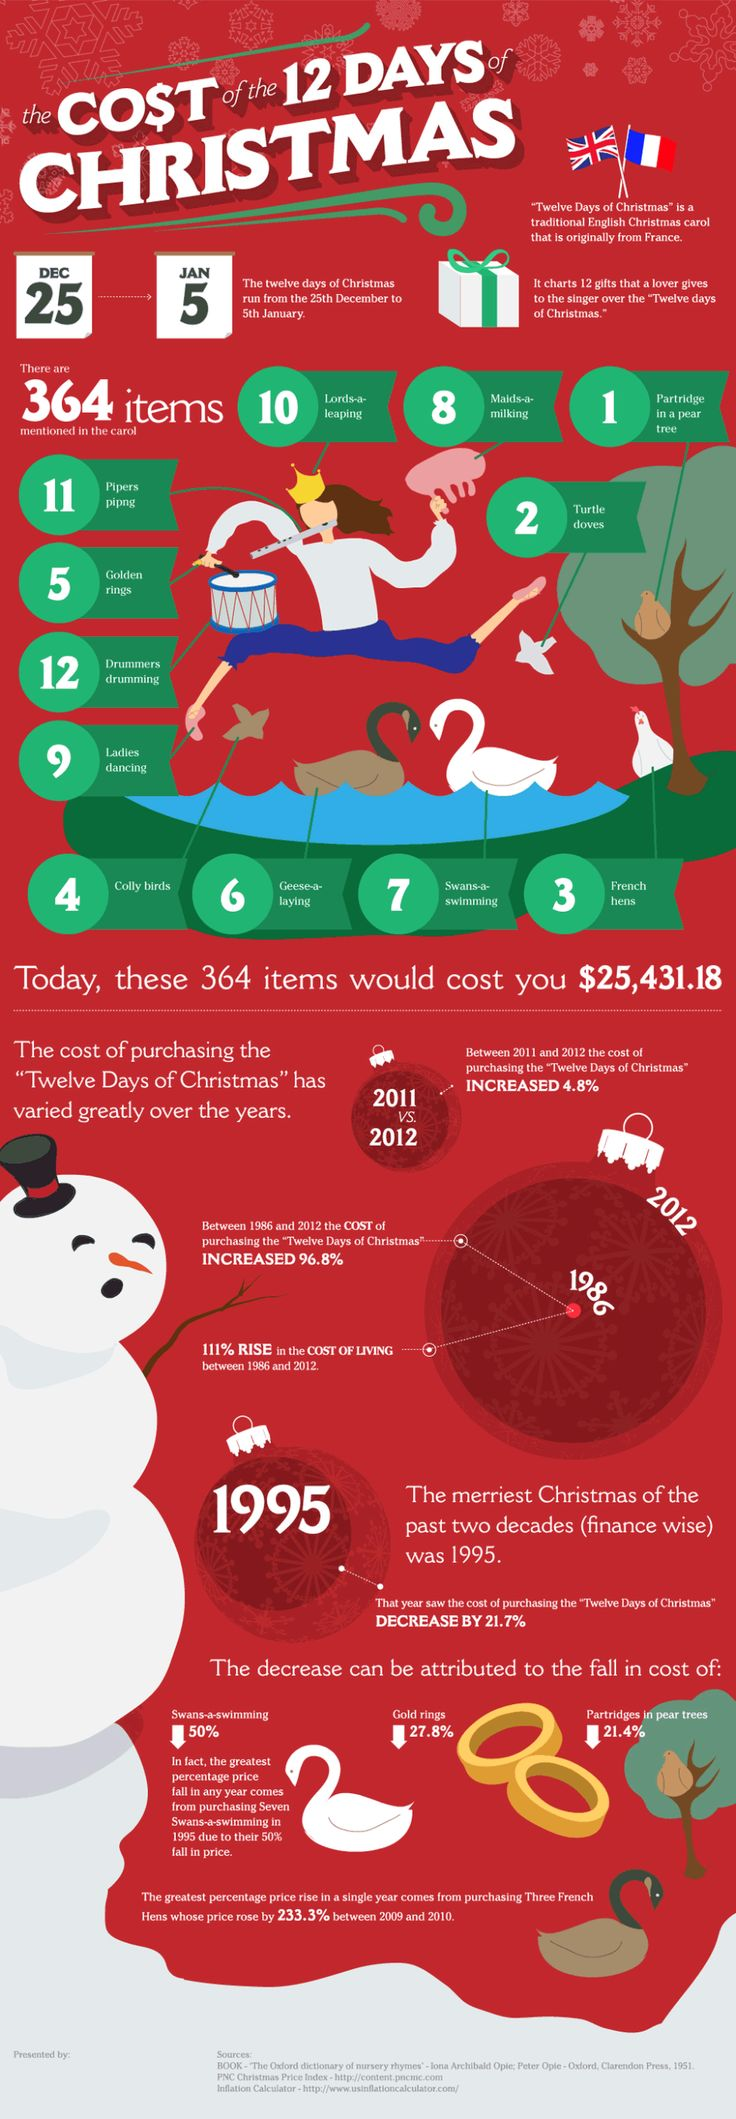 32 best Infographics--Christmas images on Pinterest | Christmas ...